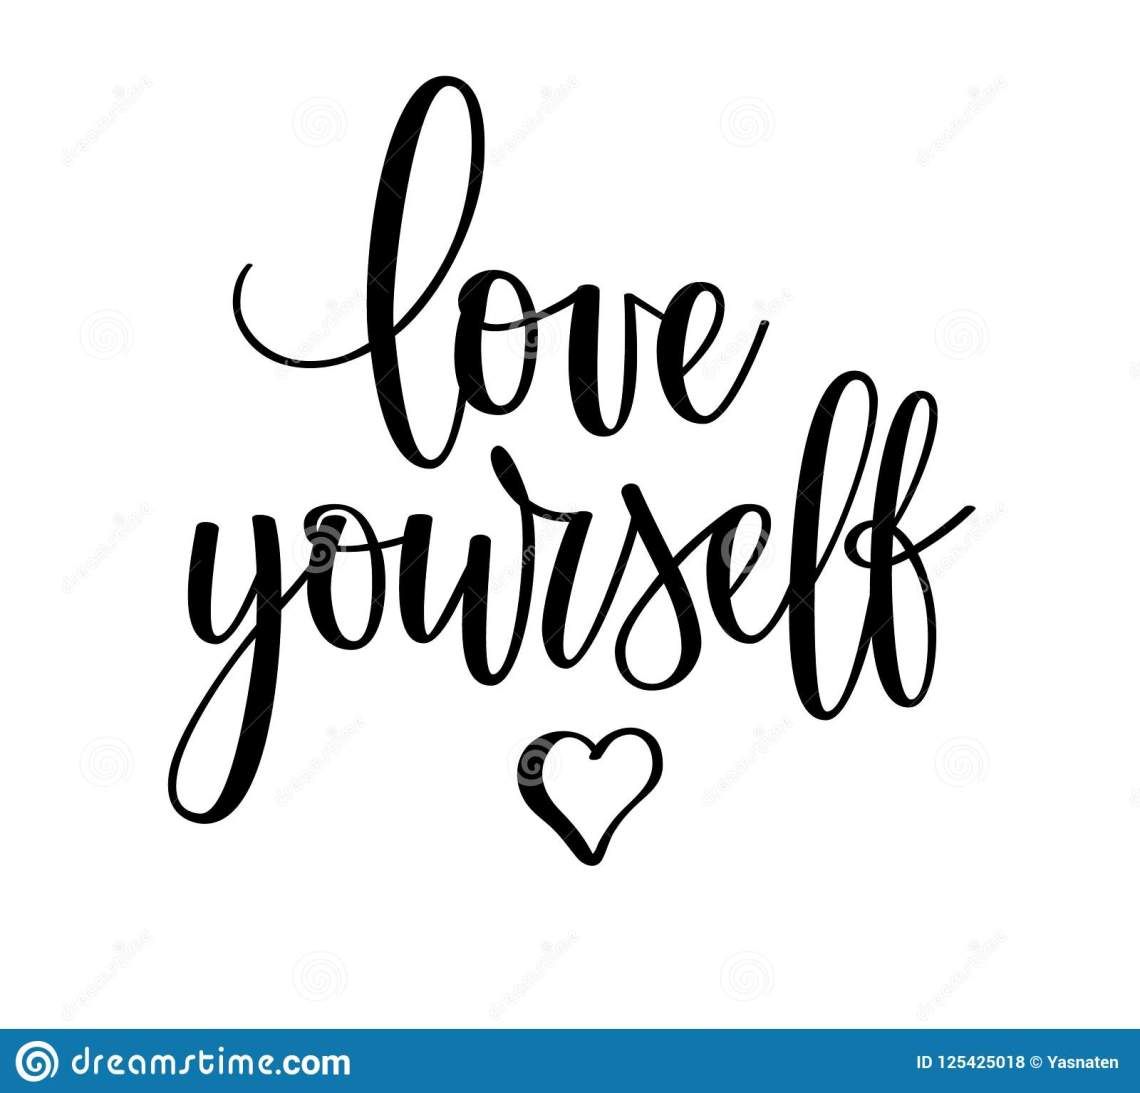 Download Vector Love Yourself Motivational Inspirational Lettering ...